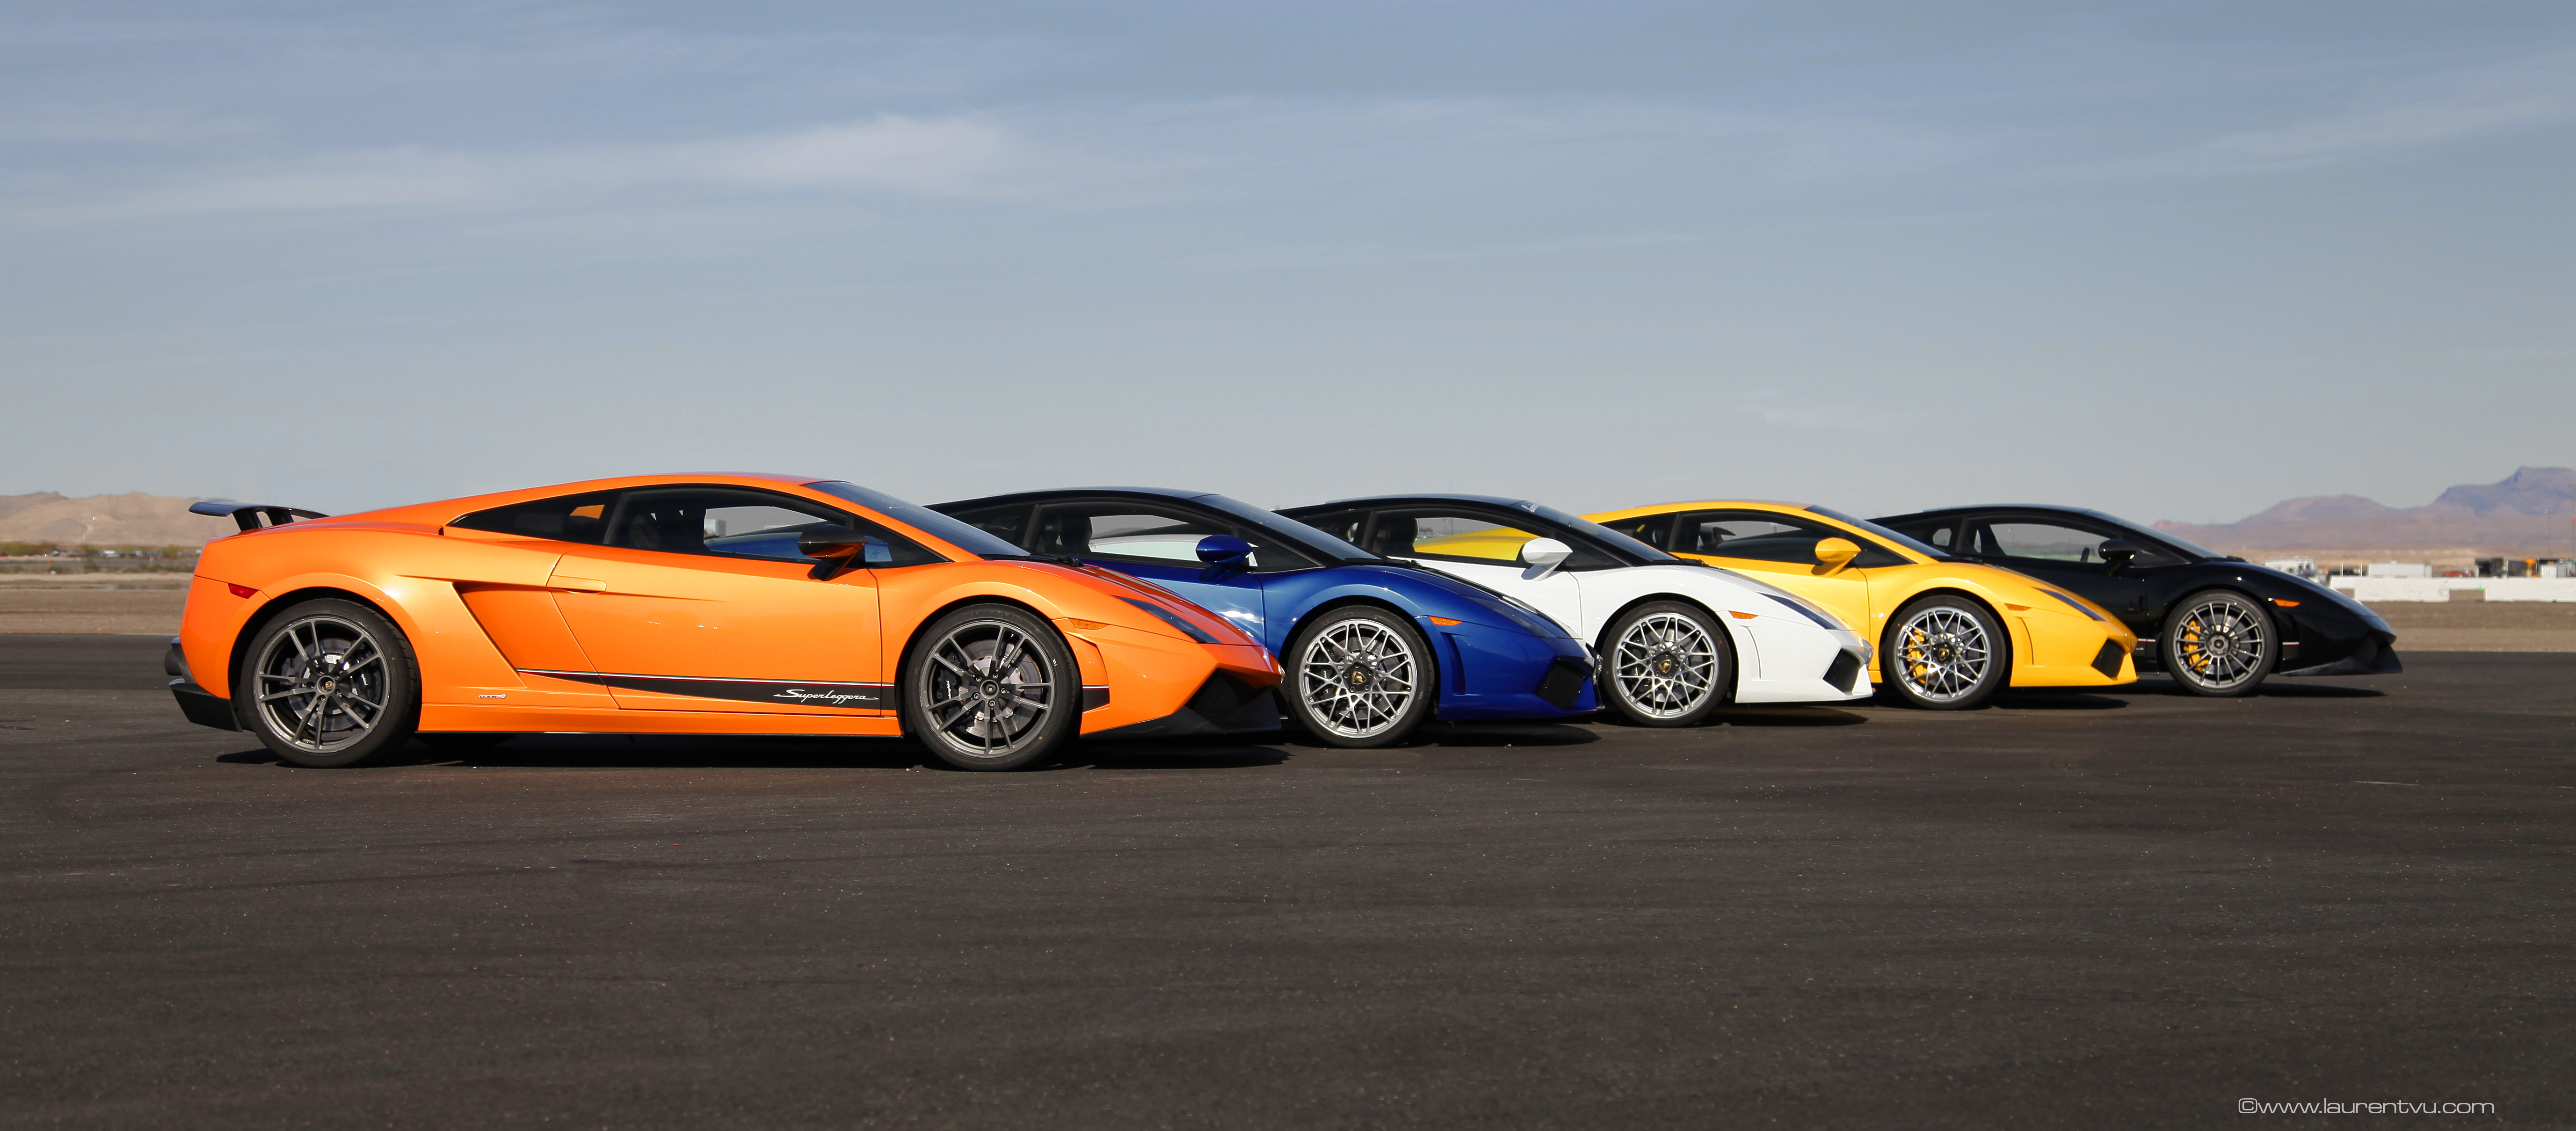 Exotics Racing Las Vegas Offers 30 Exotic Cxotics S Guests Can Drive The World Largest Fleet Of Cars On A Private Racetrack